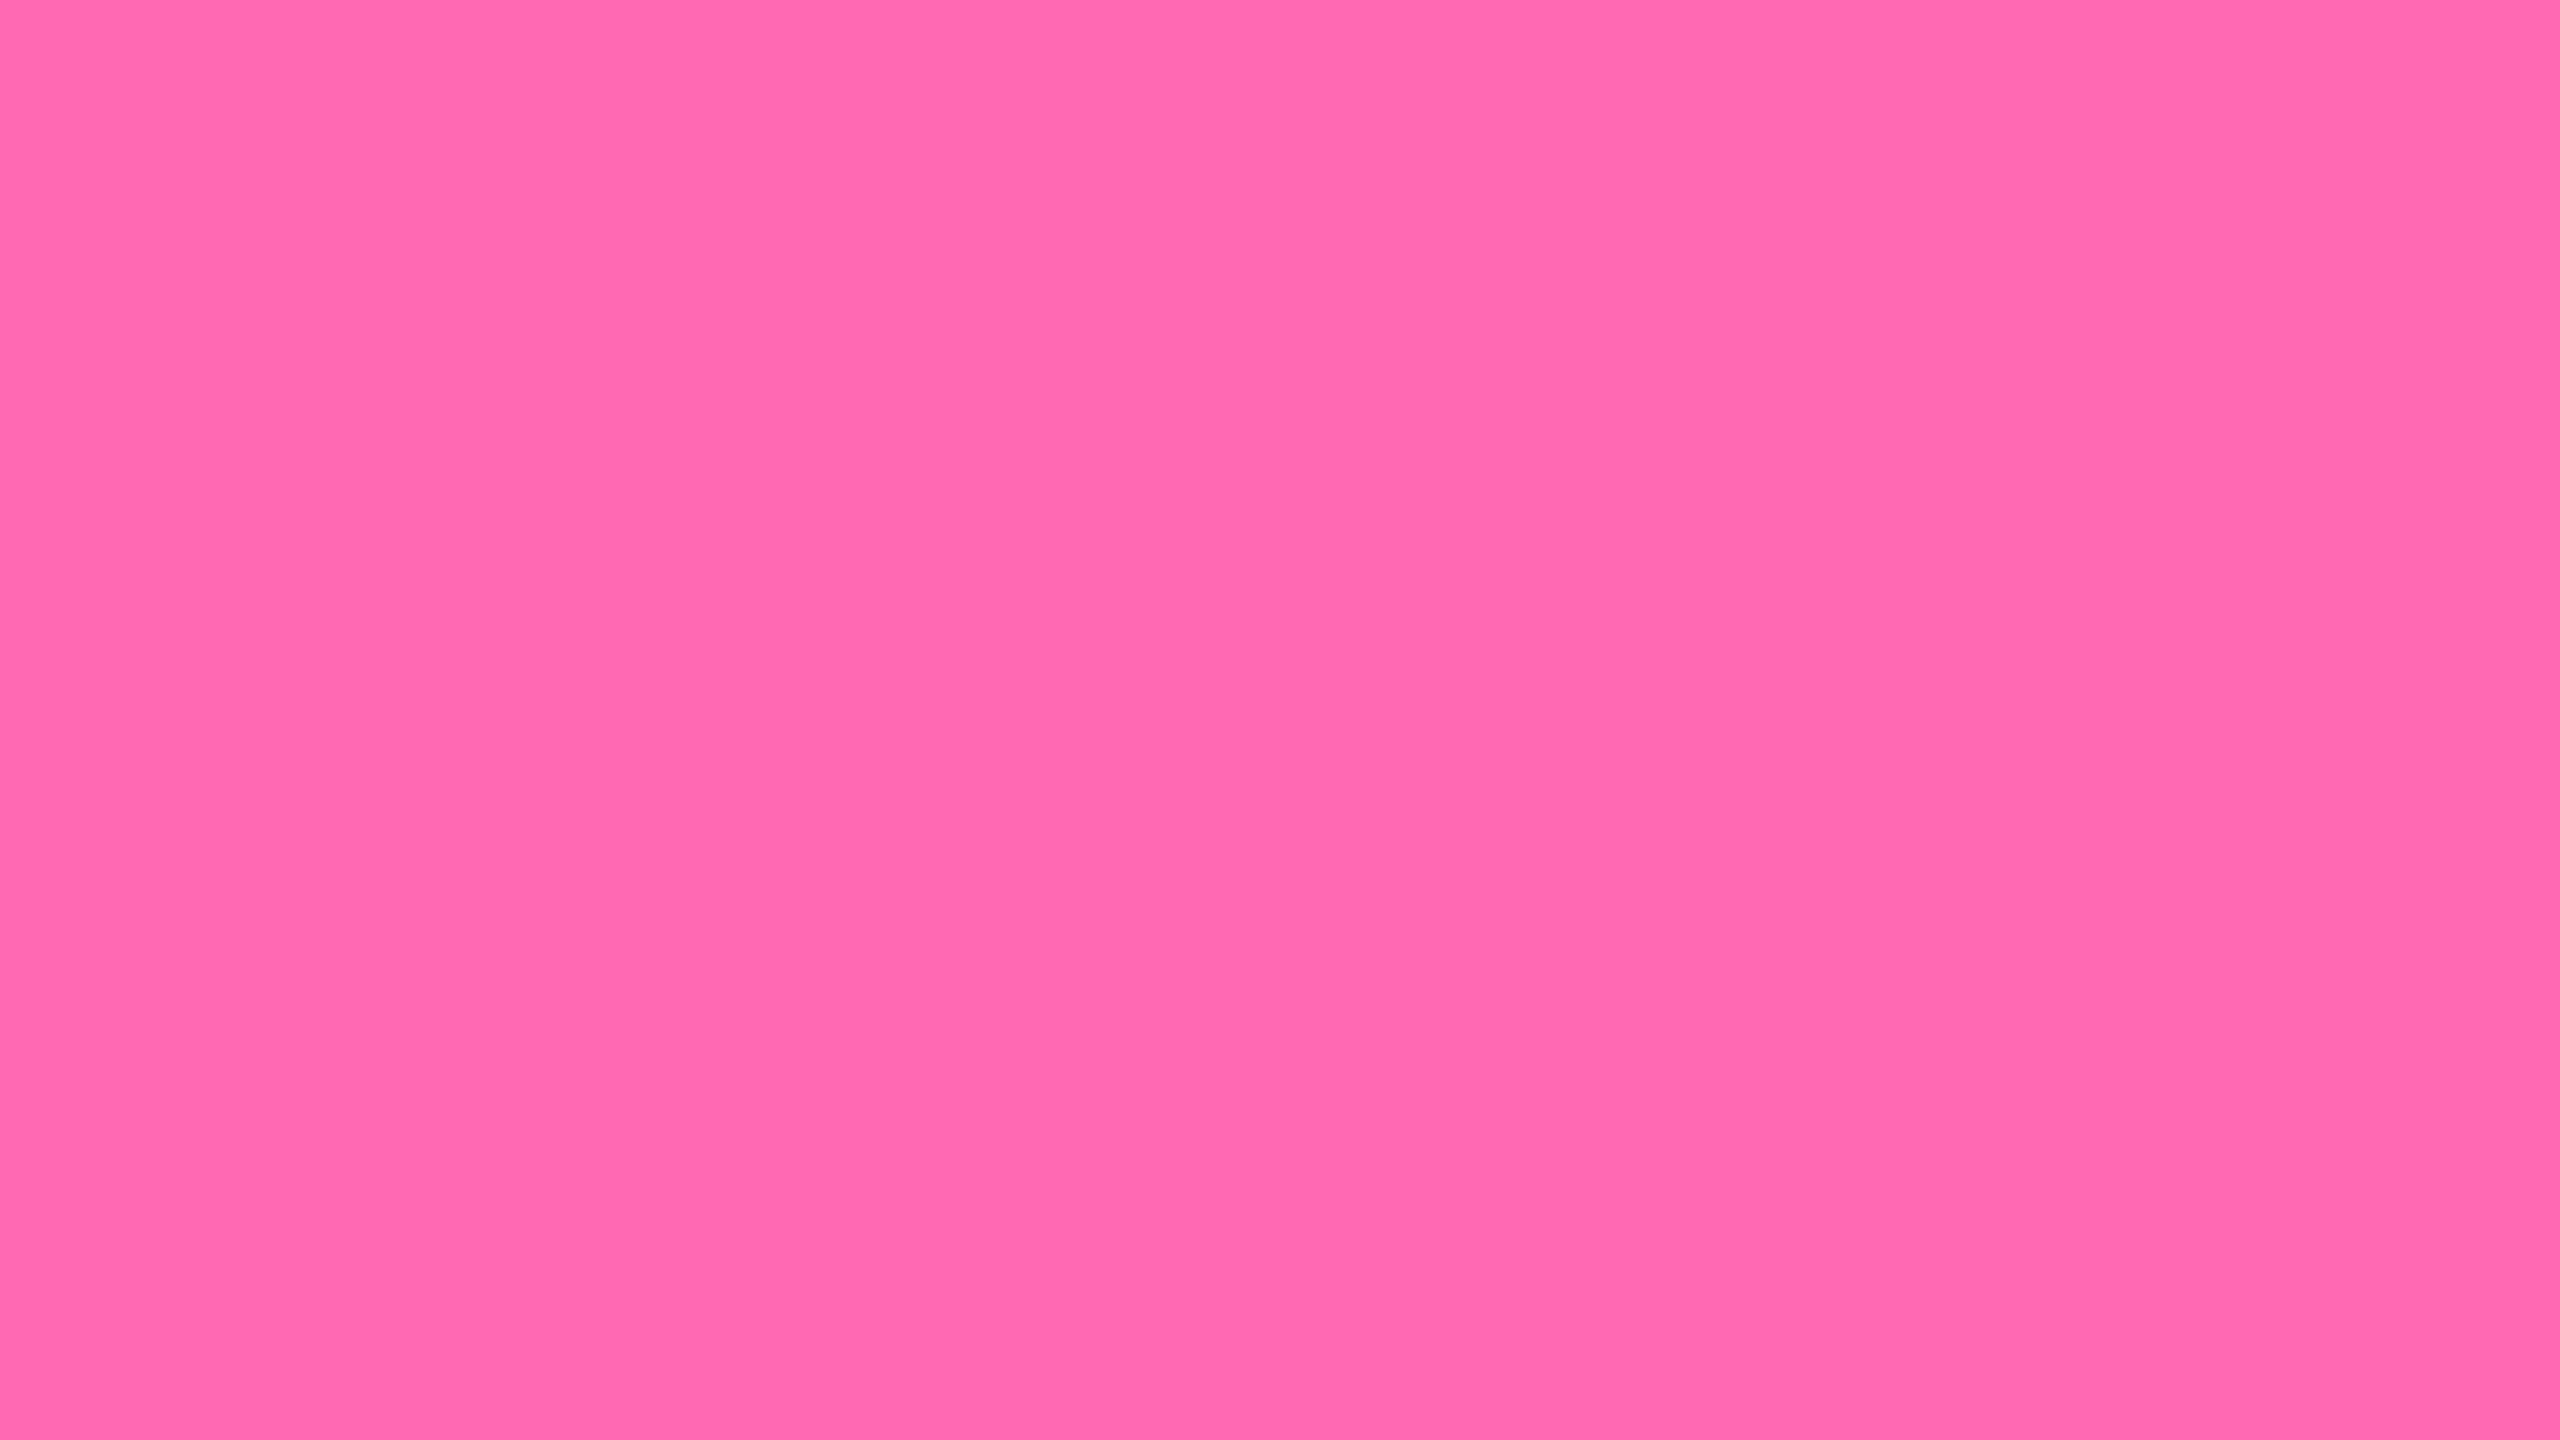 Barbie Hd Wallpapers Free Download Color Pink Background 56 Images